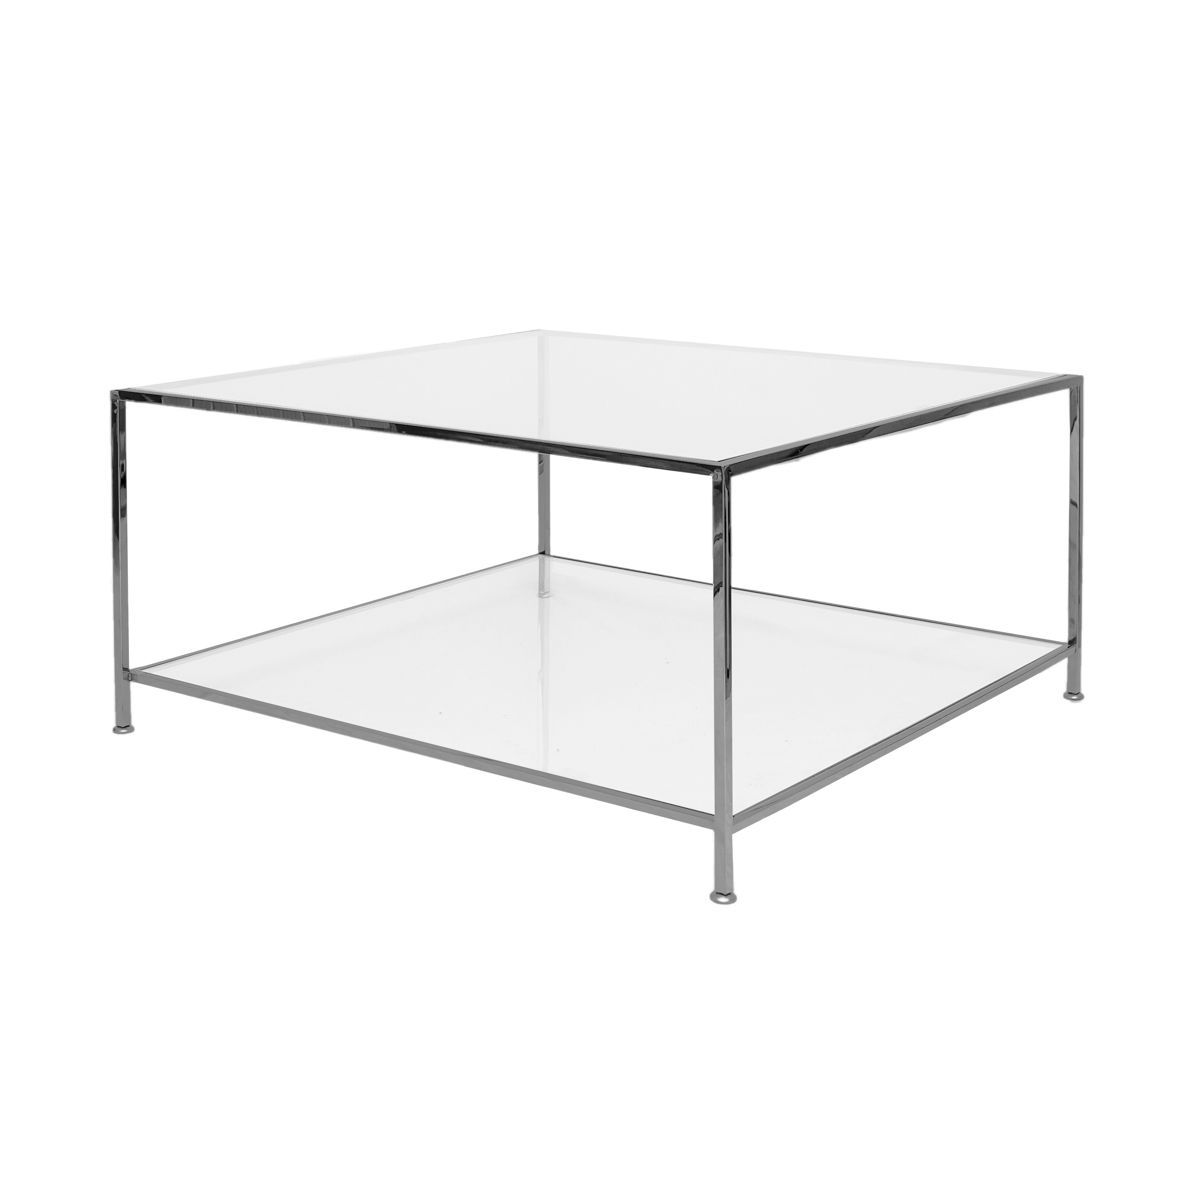 Big Square Table – Svart Krom